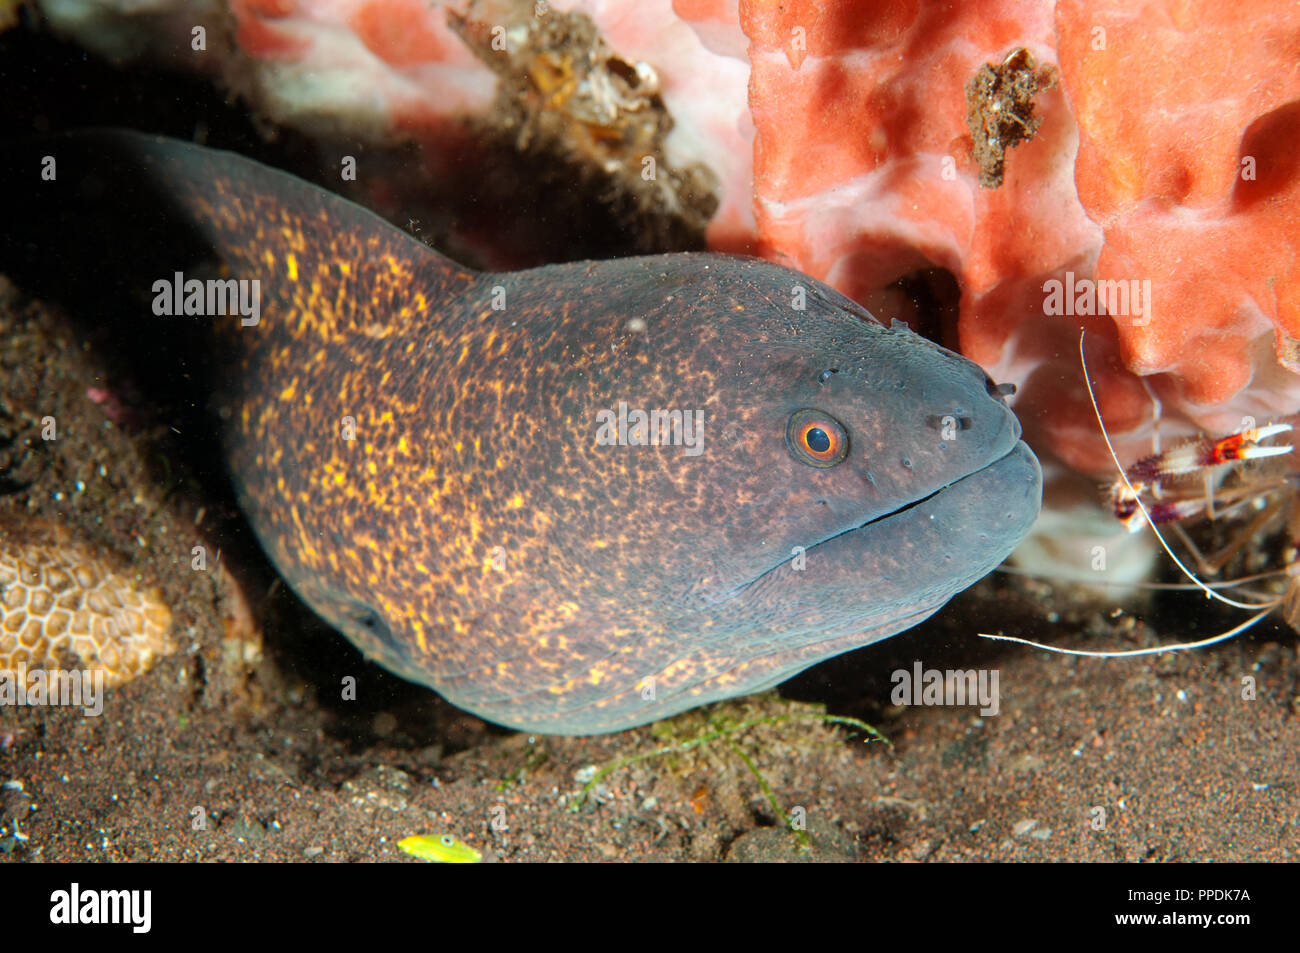 Yellowmargin moray, Gymnothorax flavimarginatus, Bali Indonesia. - Stock Image